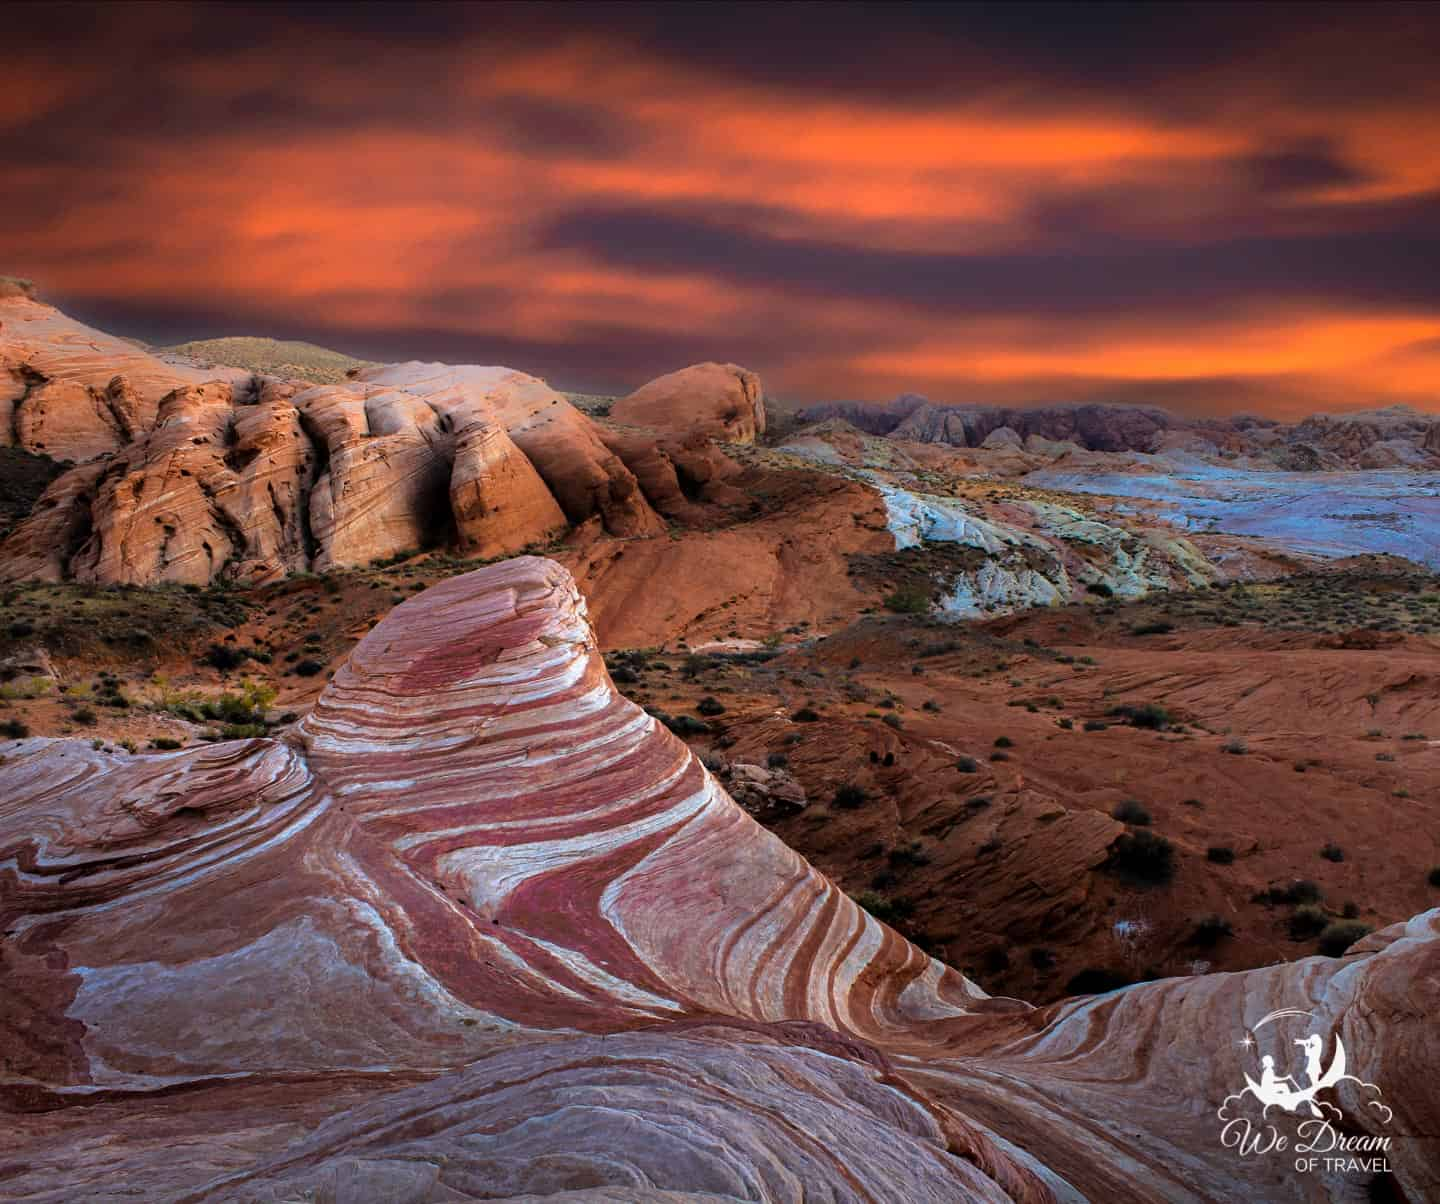 Fire in the sky and in the landscape!! Valley of Fire is the ultimate dream destination!